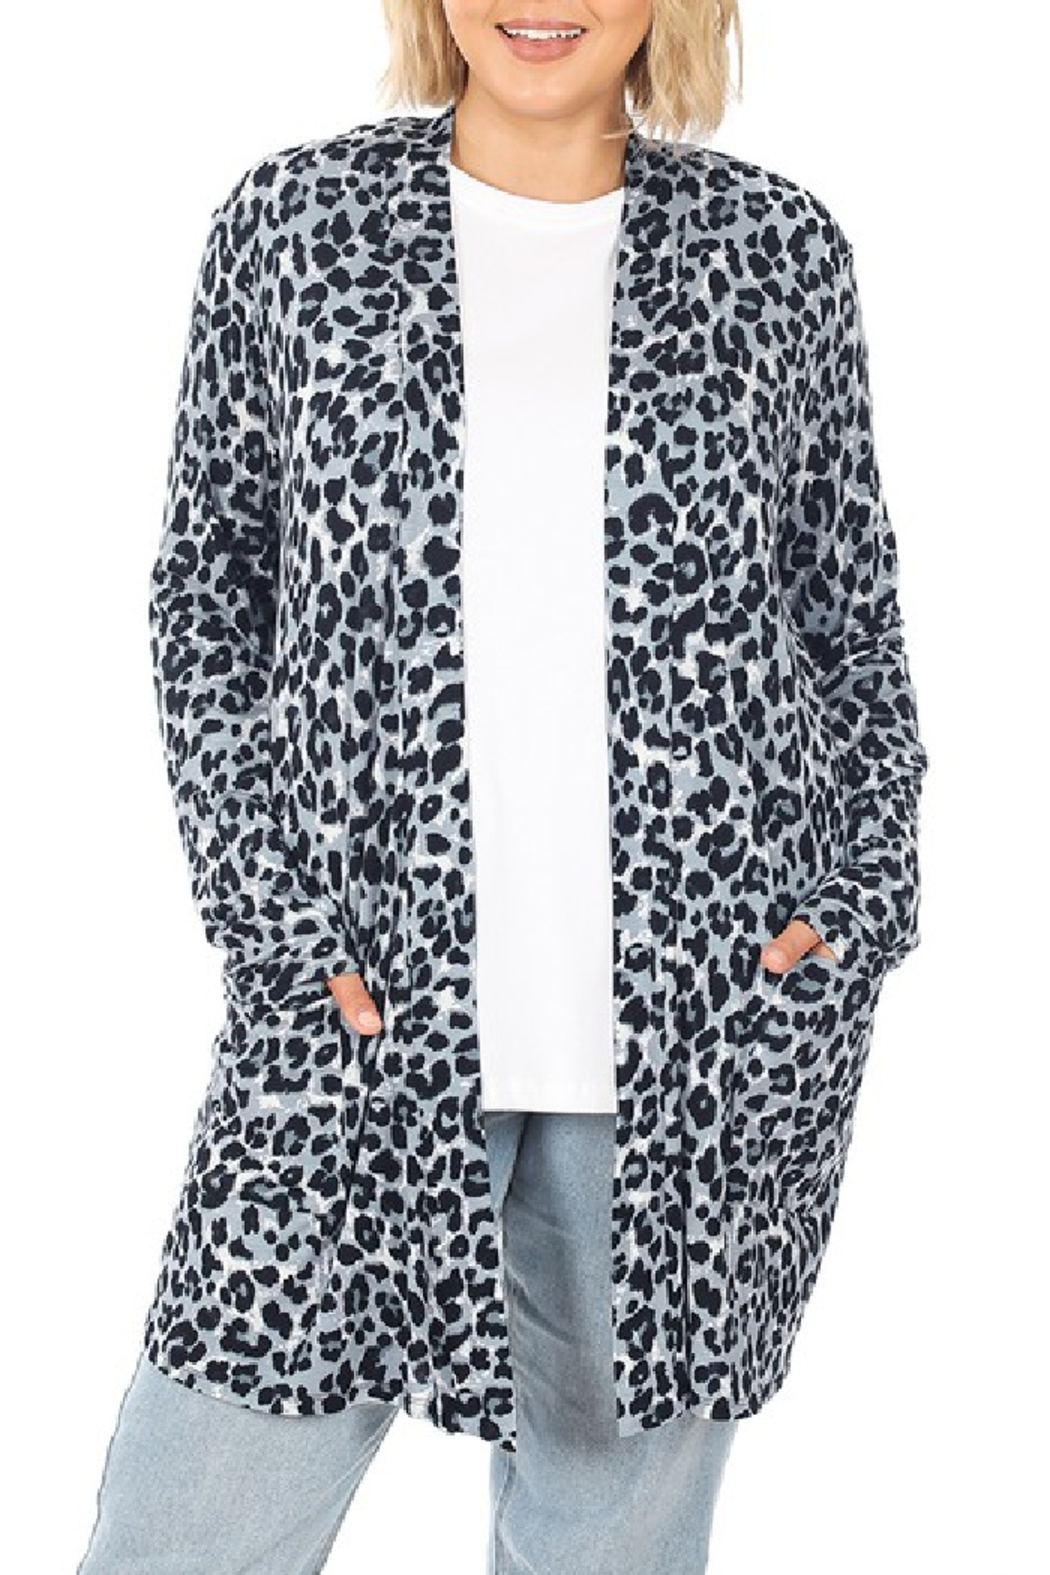 Zenana Leopard Open Cardigan - Front Cropped Image